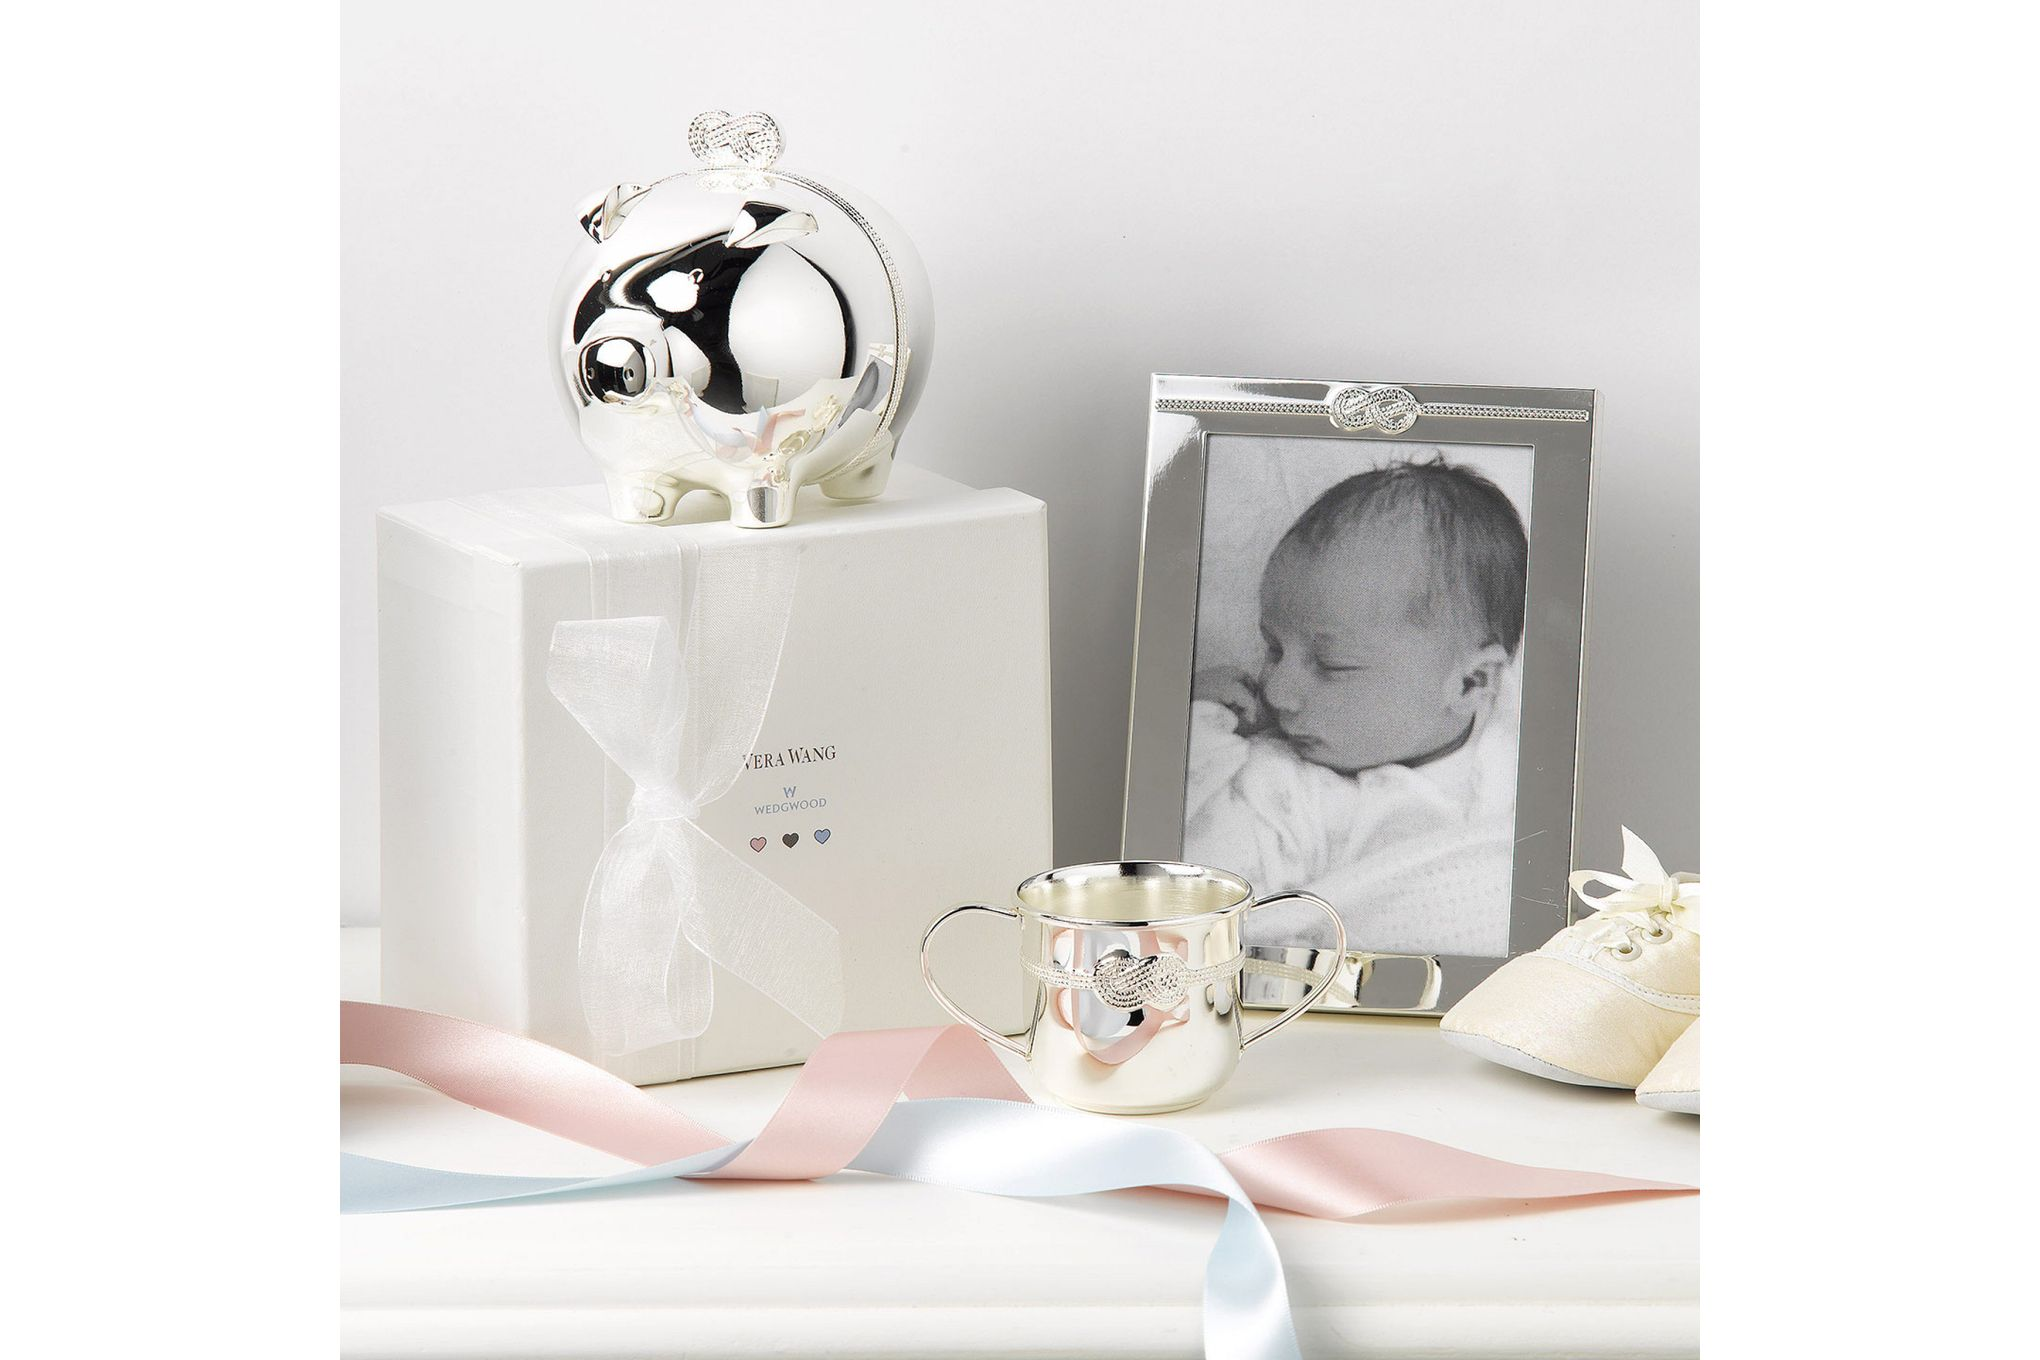 """Vera Wang for Wedgwood Gifts & Accessories Photo Frame Infinity 4 x 6"""" thumb 2"""